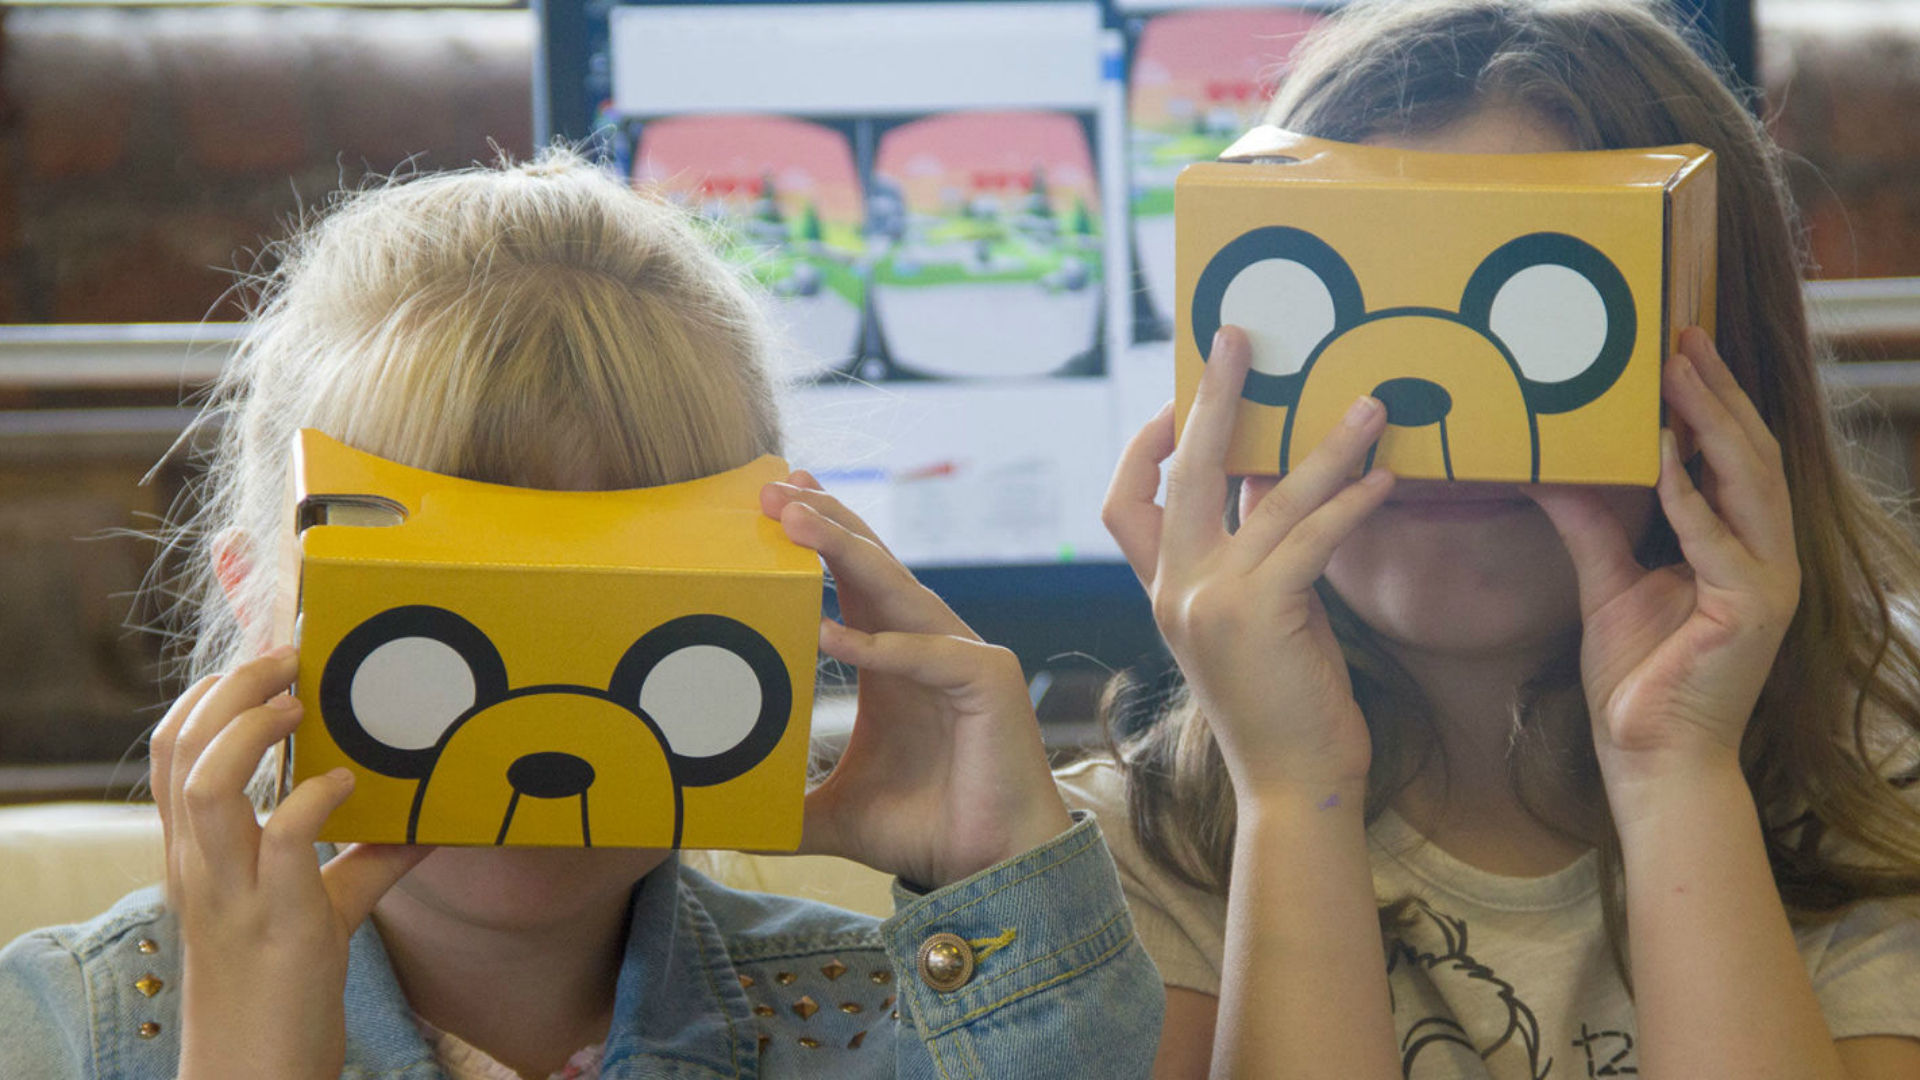 Are VR headsets safe for kids?